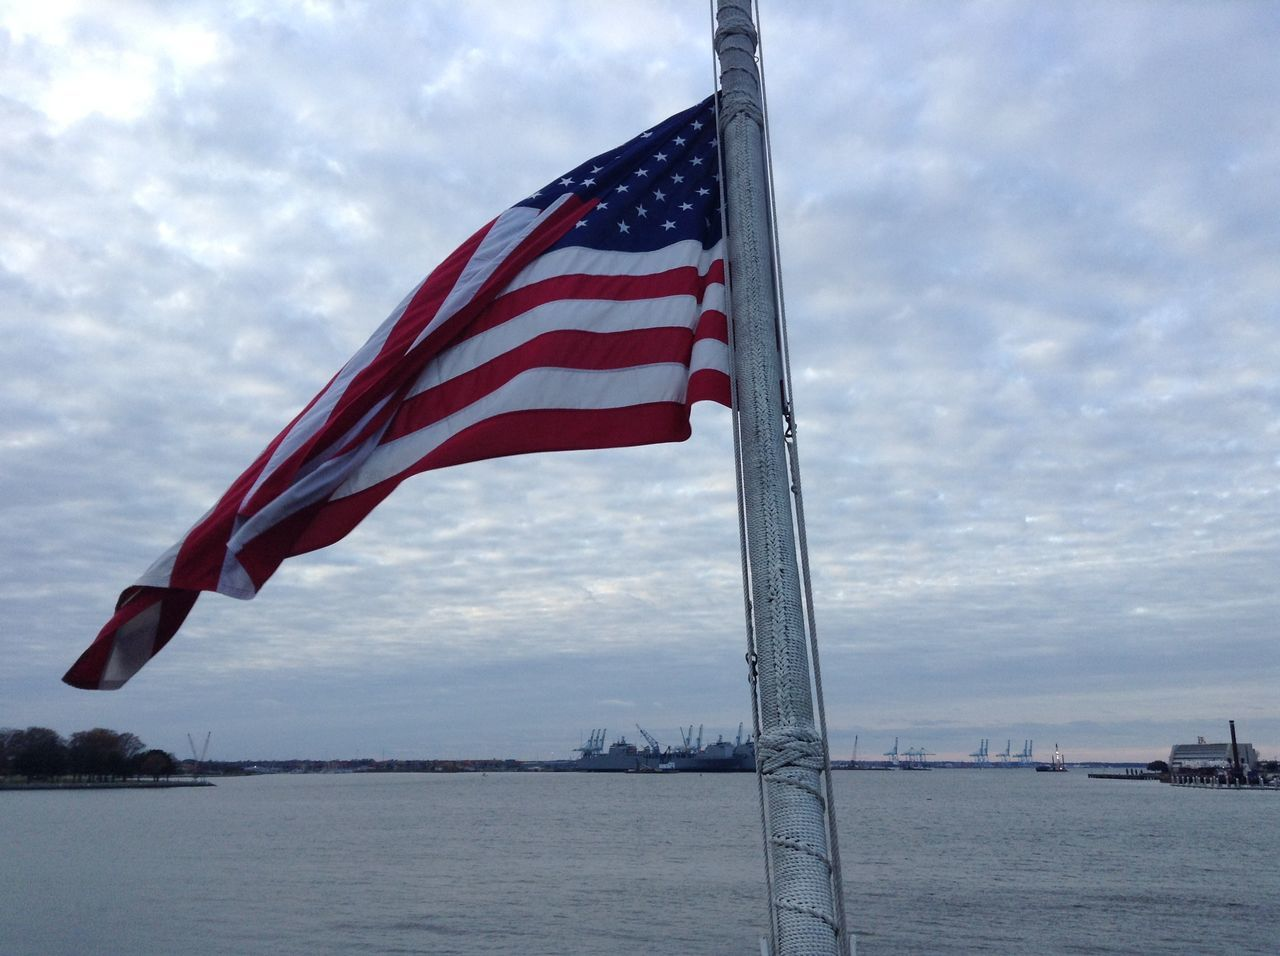 patriotism, flag, striped, stars and stripes, sky, cloud - sky, flag pole, freedom, day, no people, outdoors, red, water, nature